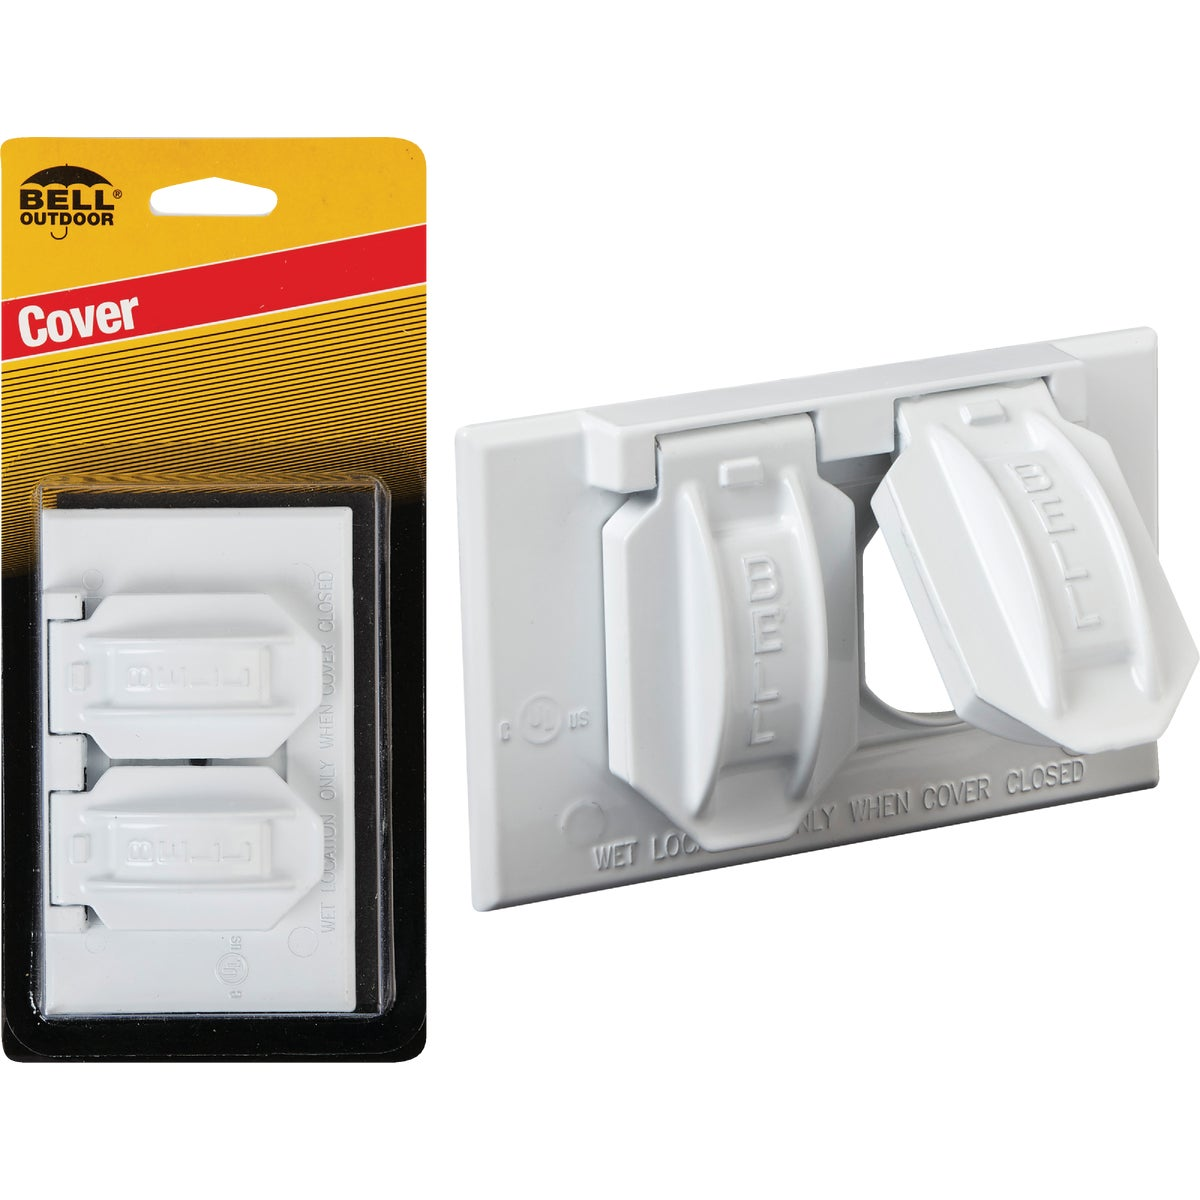 Bell Aluminum Weatherproof Outdoor Outlet Cover, 5180-6